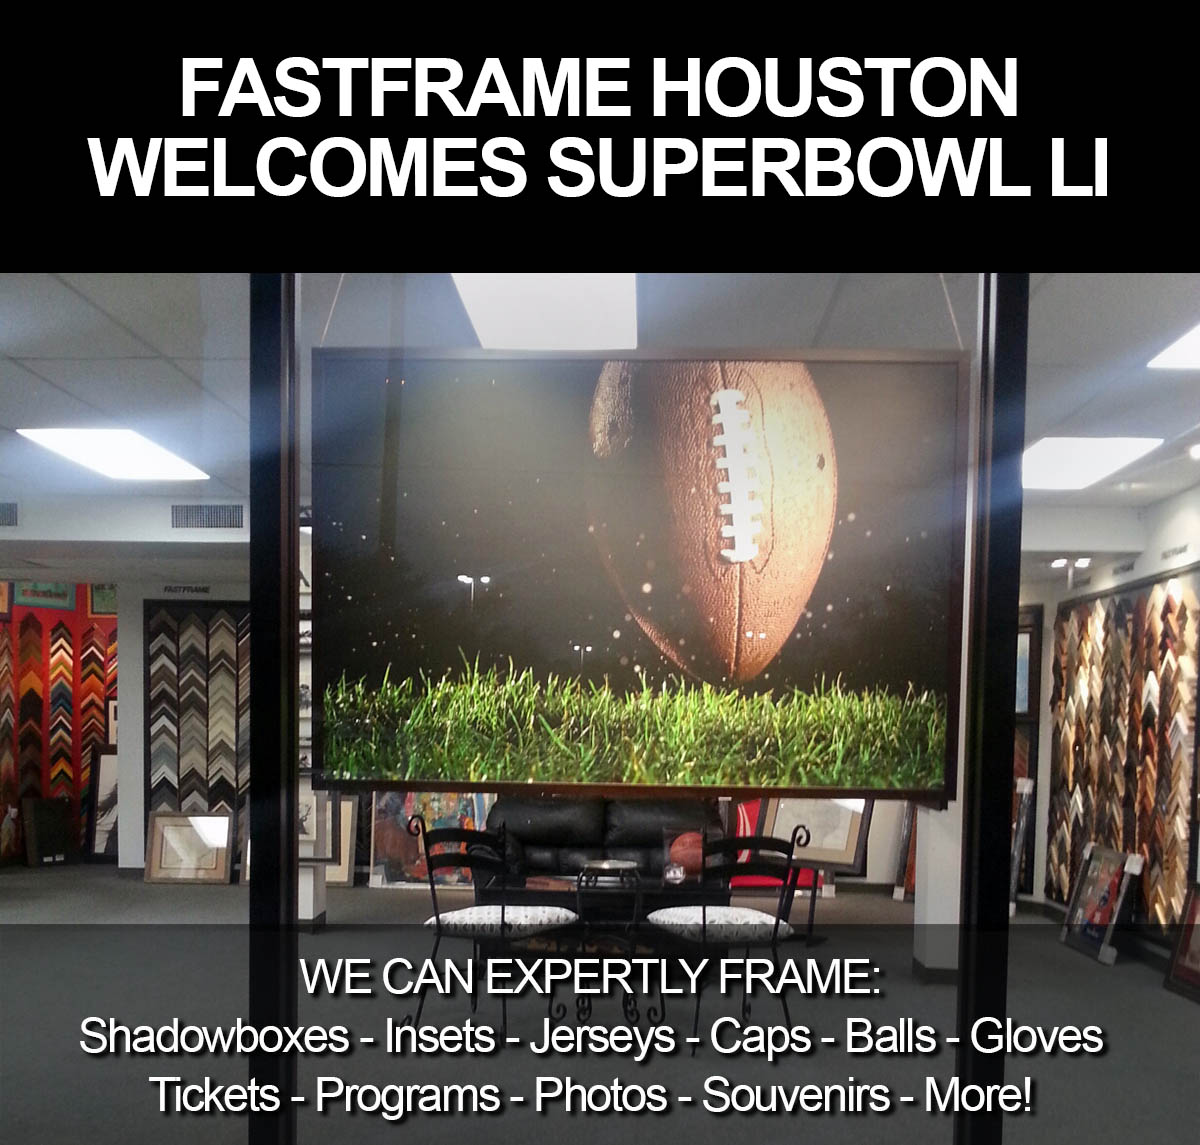 fastframe houston welcomes superbowl li to houston whether youre a sports fan or a business hosting clients fastframe can meet any of your custom